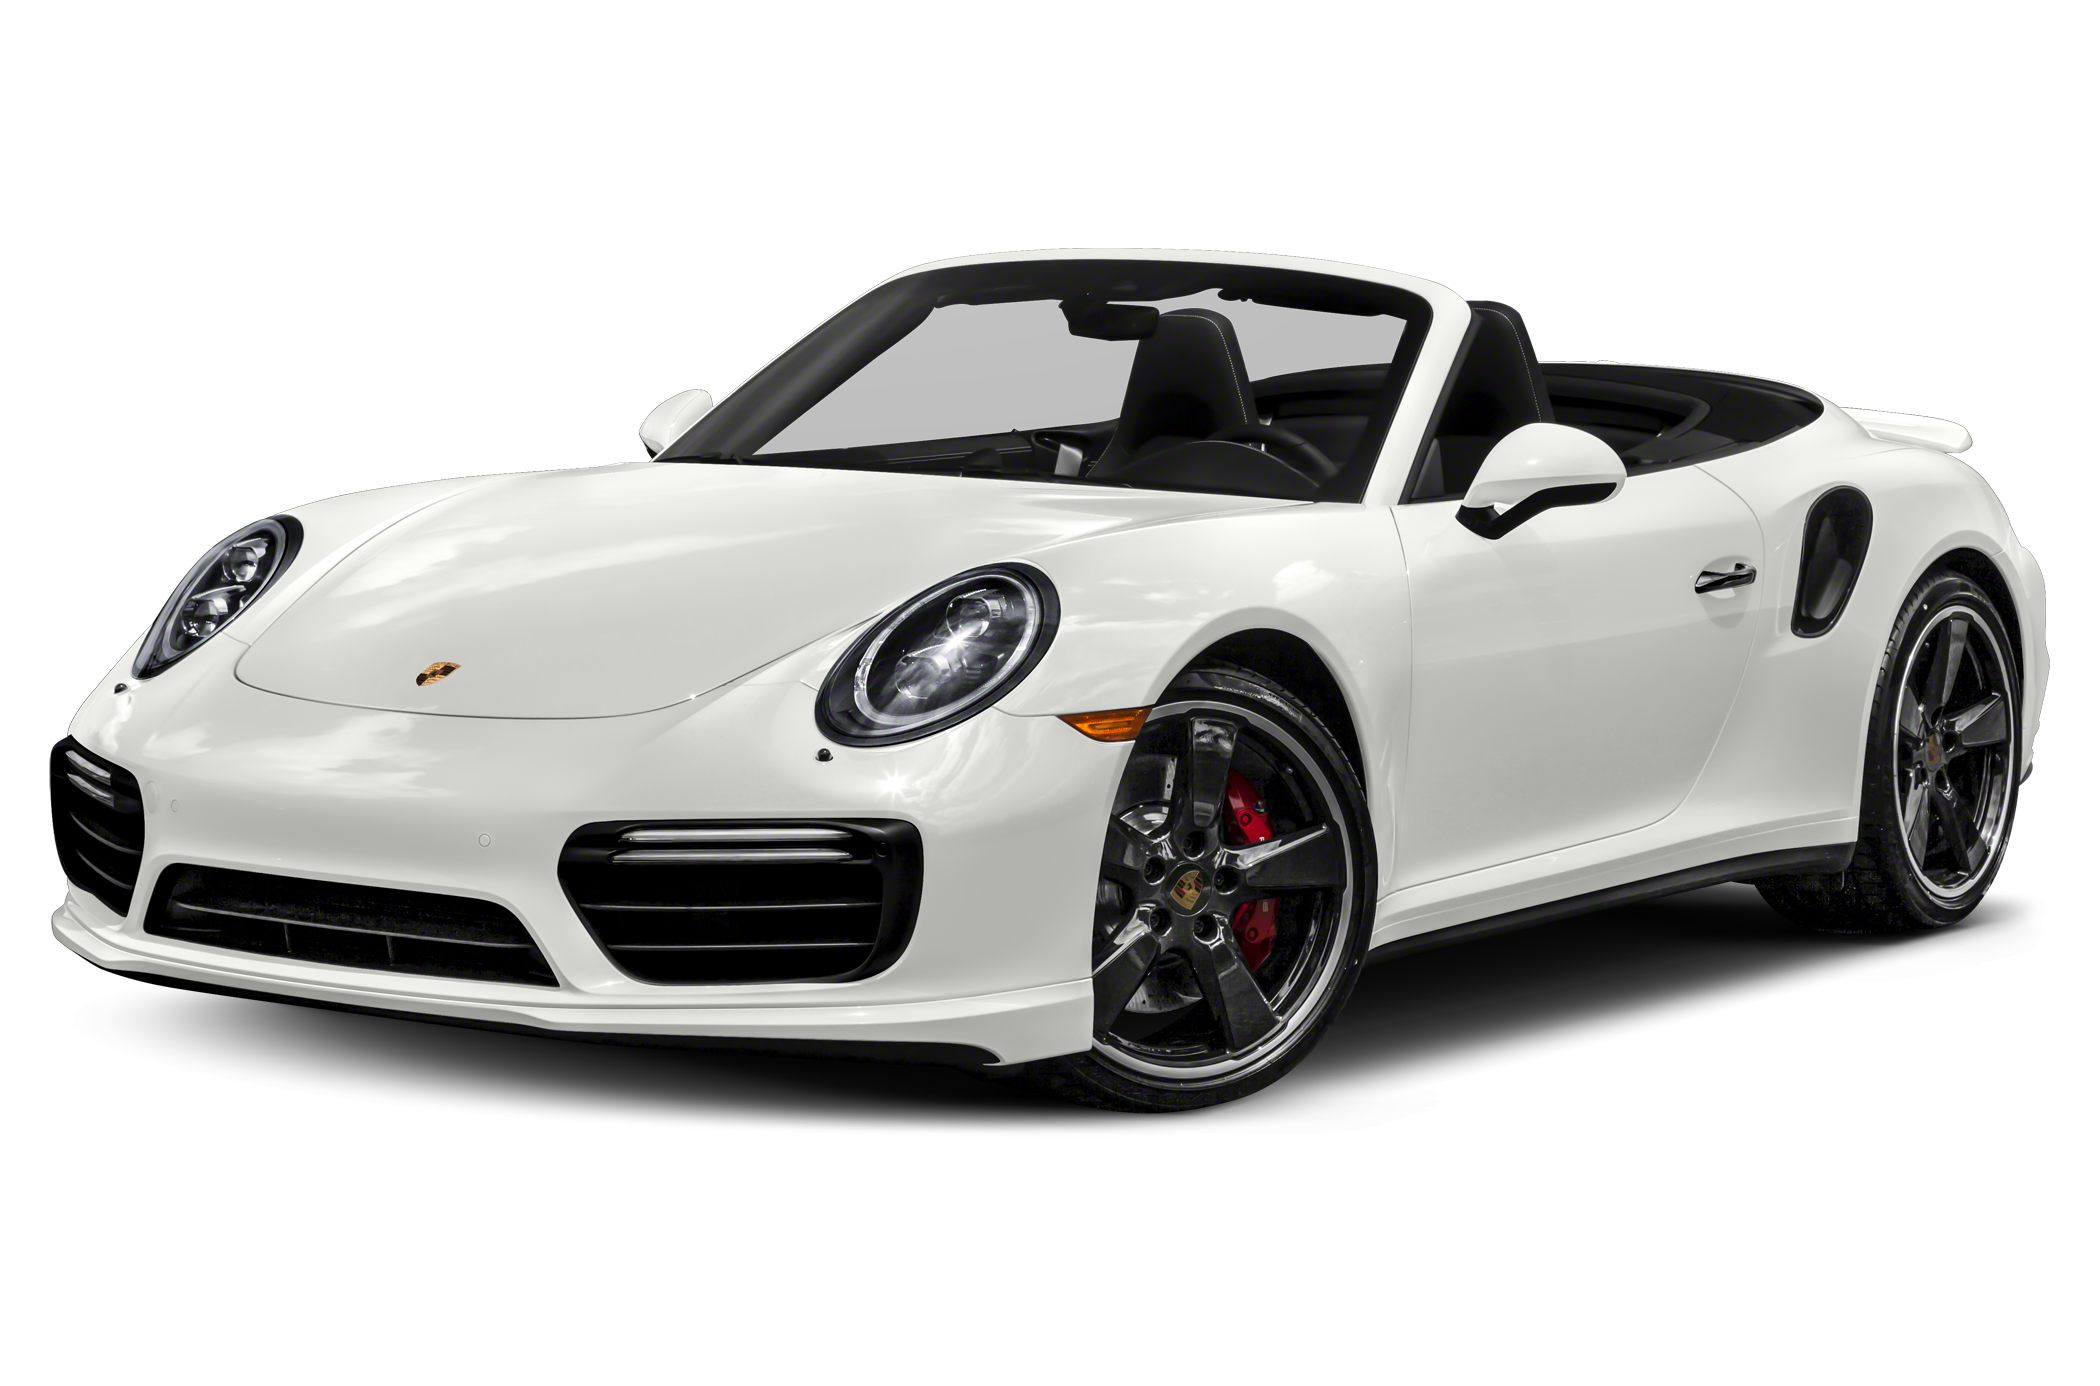 2017 Porsche 911 Turbo S 2dr All Wheel Drive Cabriolet Pricing And Options